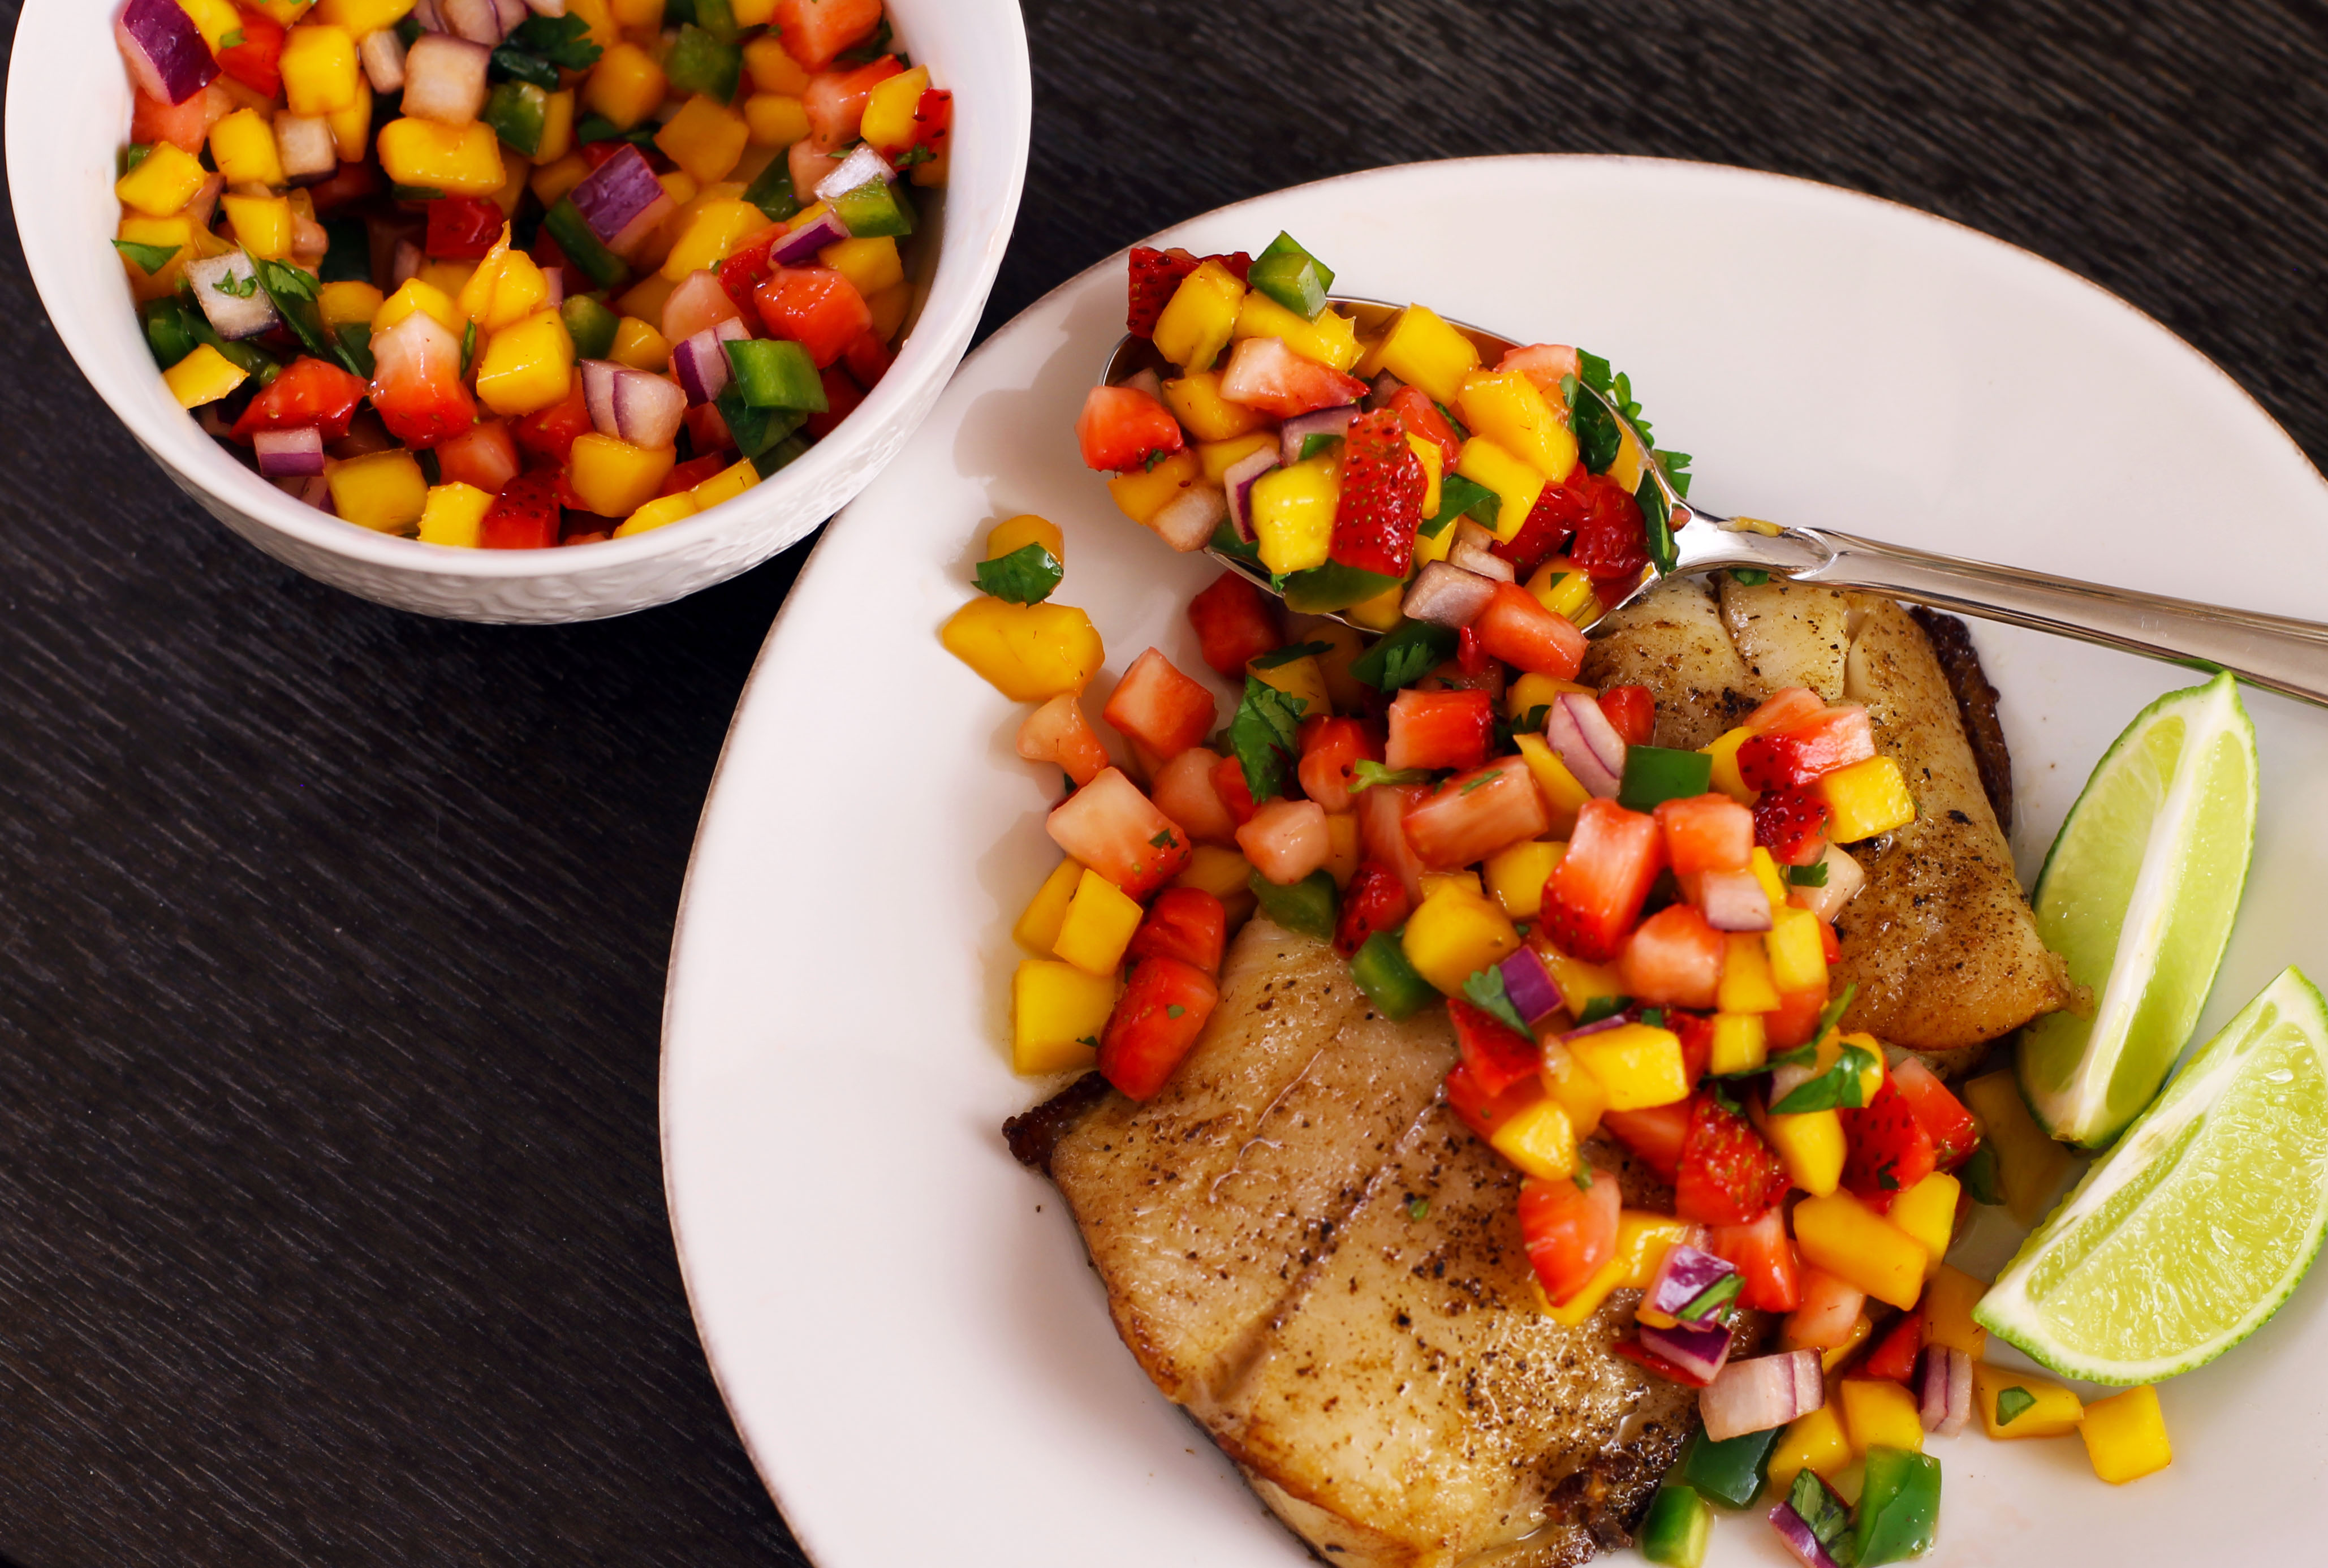 Black Cod with Strawberry-Mango Salsa